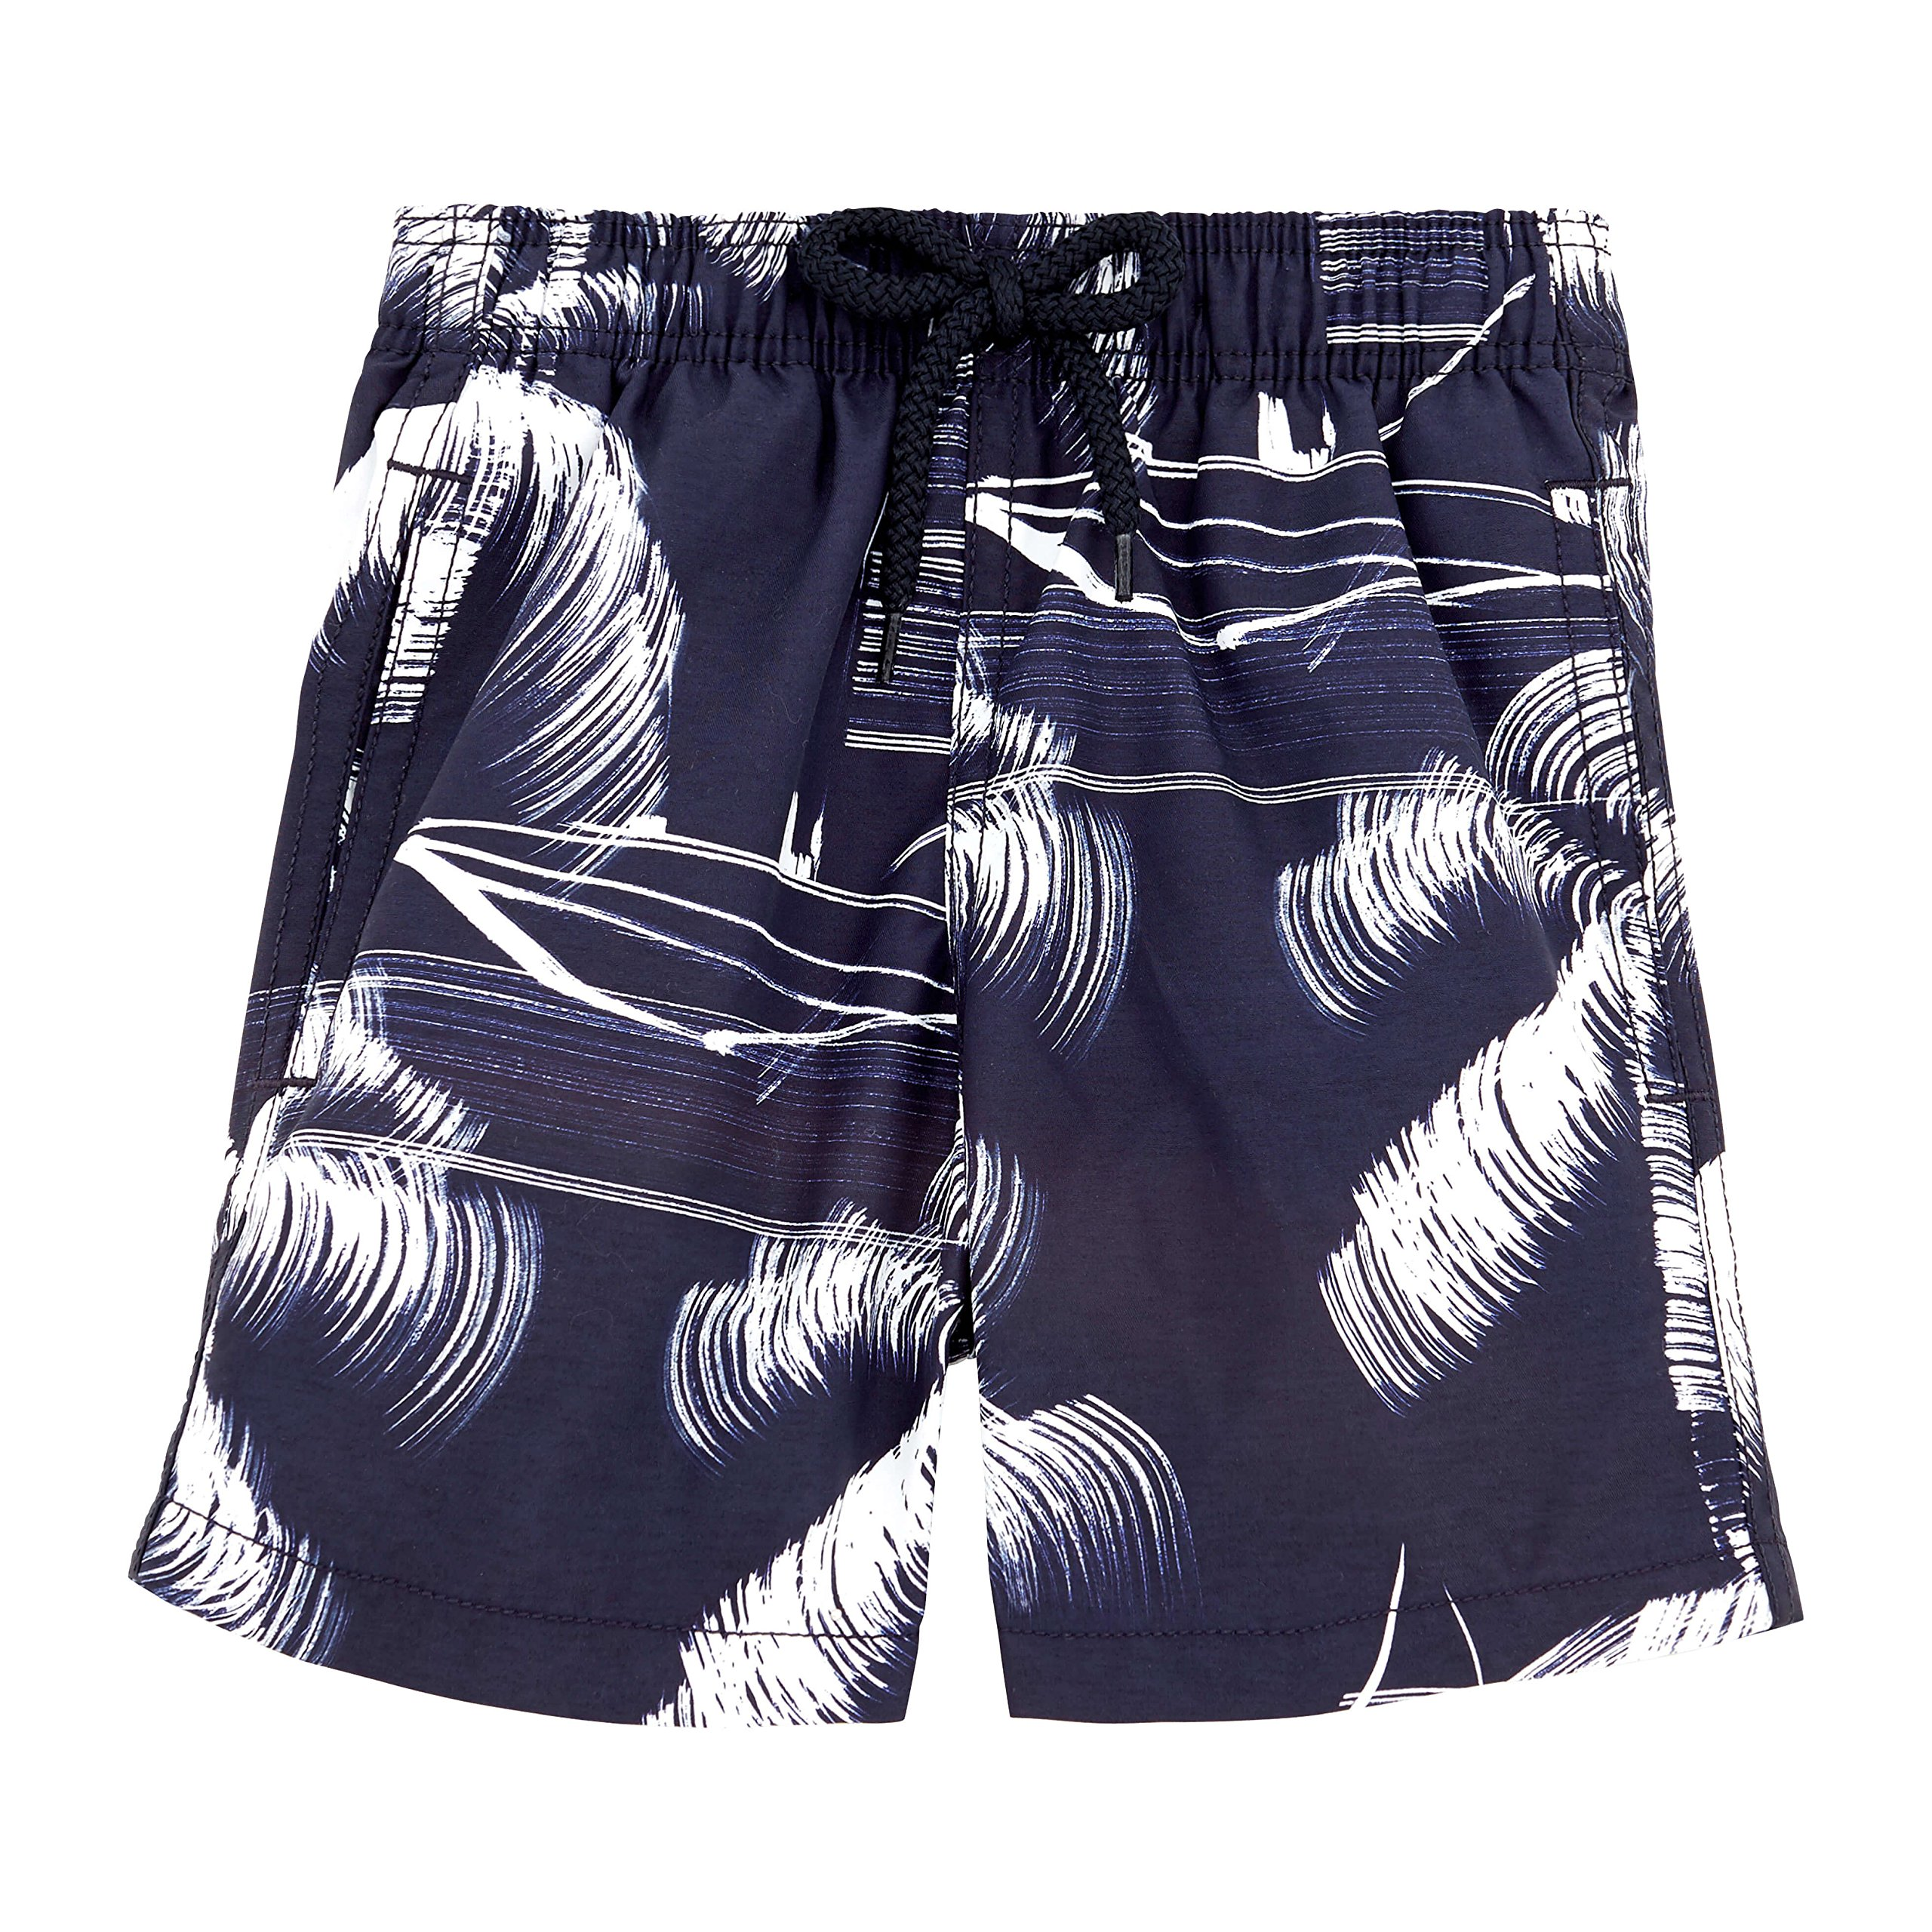 Vilebrequin - Palm Trees Boy Swimwear - Boys - 8 years - Navy Blue by Vilebrequin